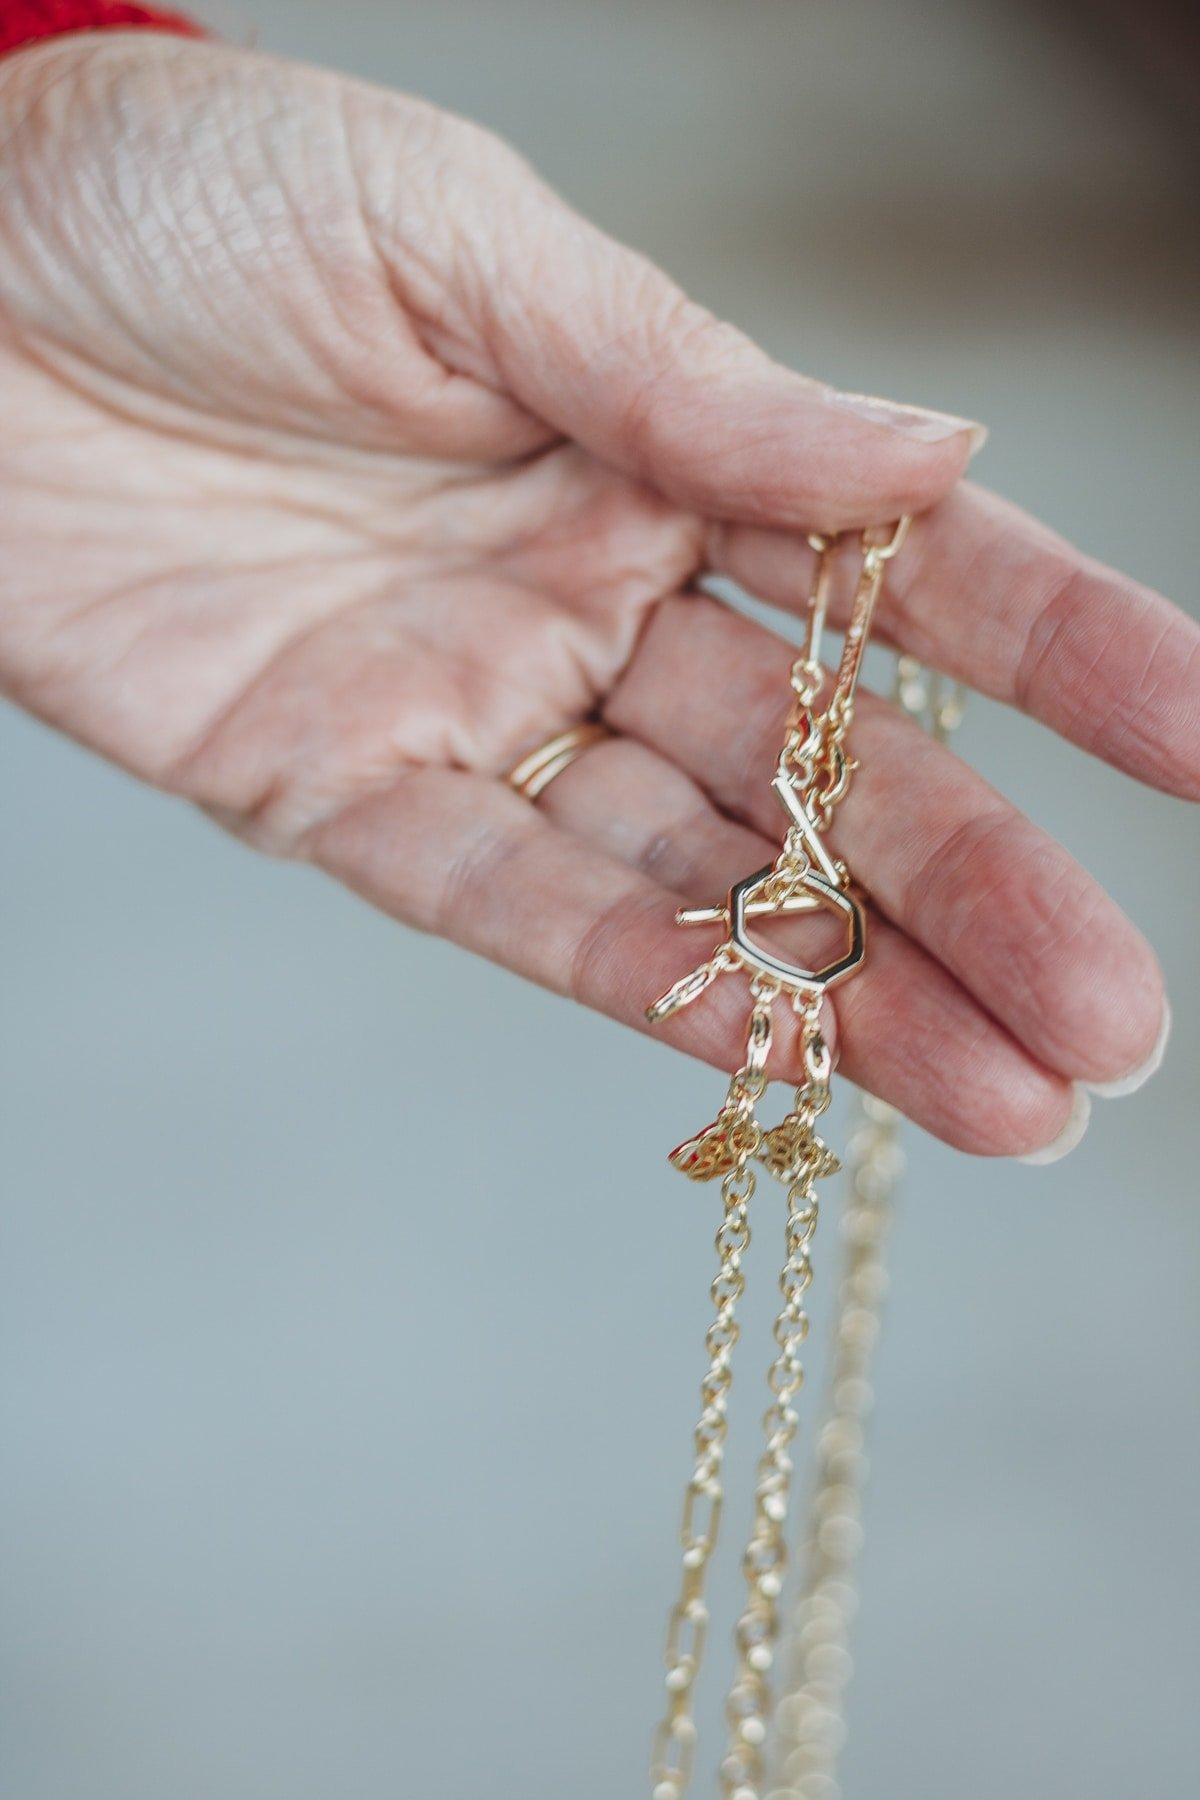 Fashion Blogger 50 Is Not Old is showing a piece of jewelry from Kendra Scott